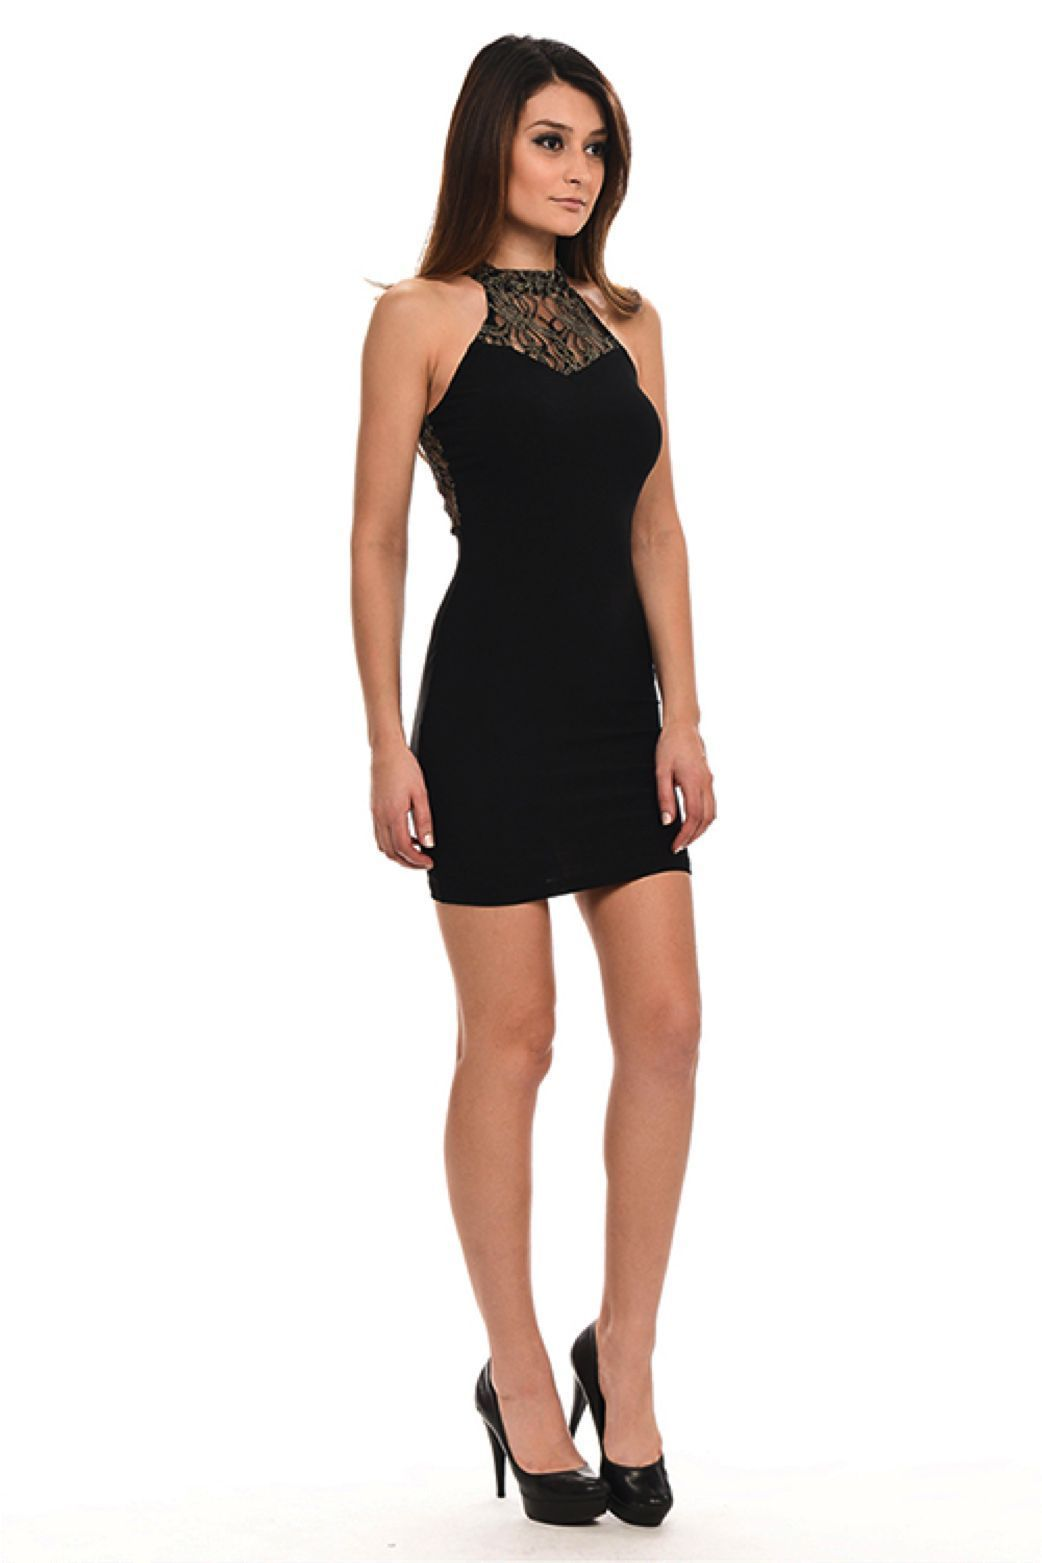 Image 2 of Sexy Black Halter Gold Mesh Lace Neck/Racer Track Back Party Mini DressLydia - L